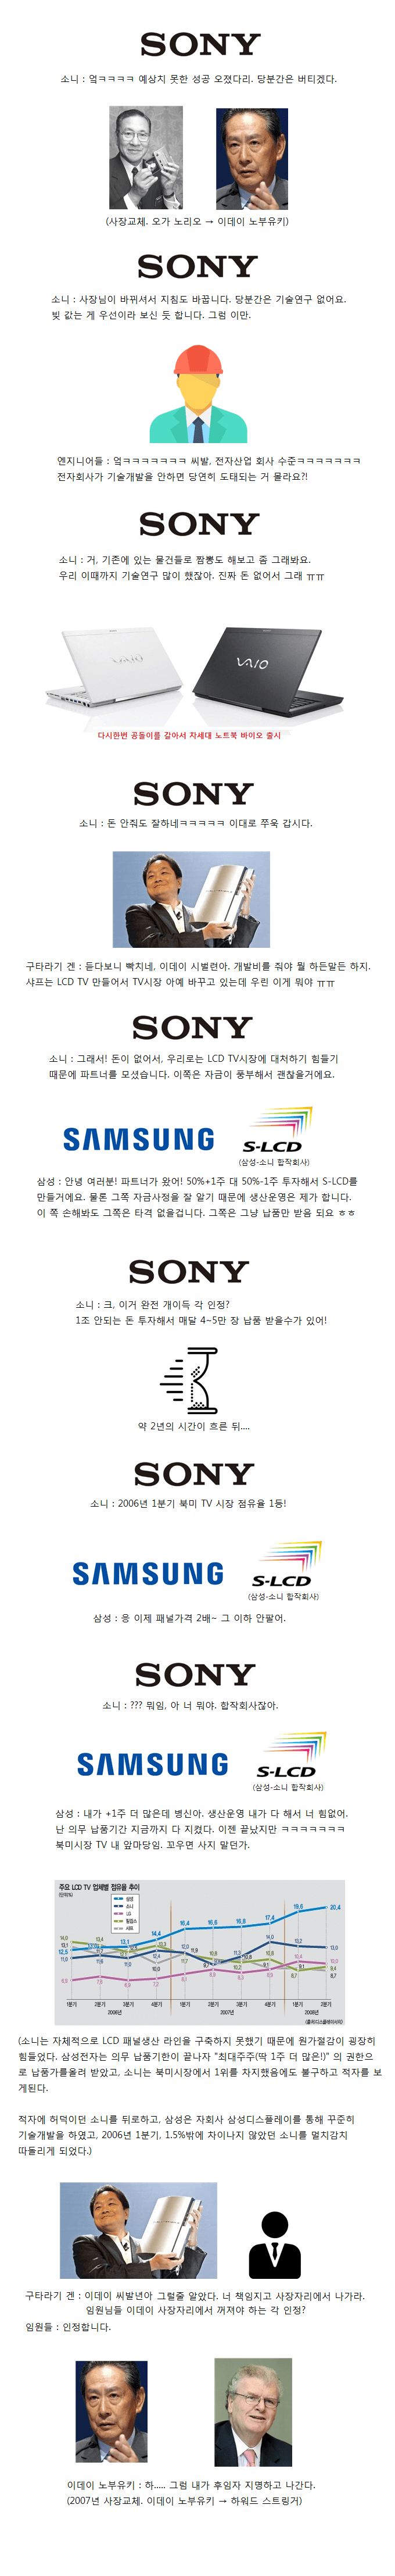 sony02.png